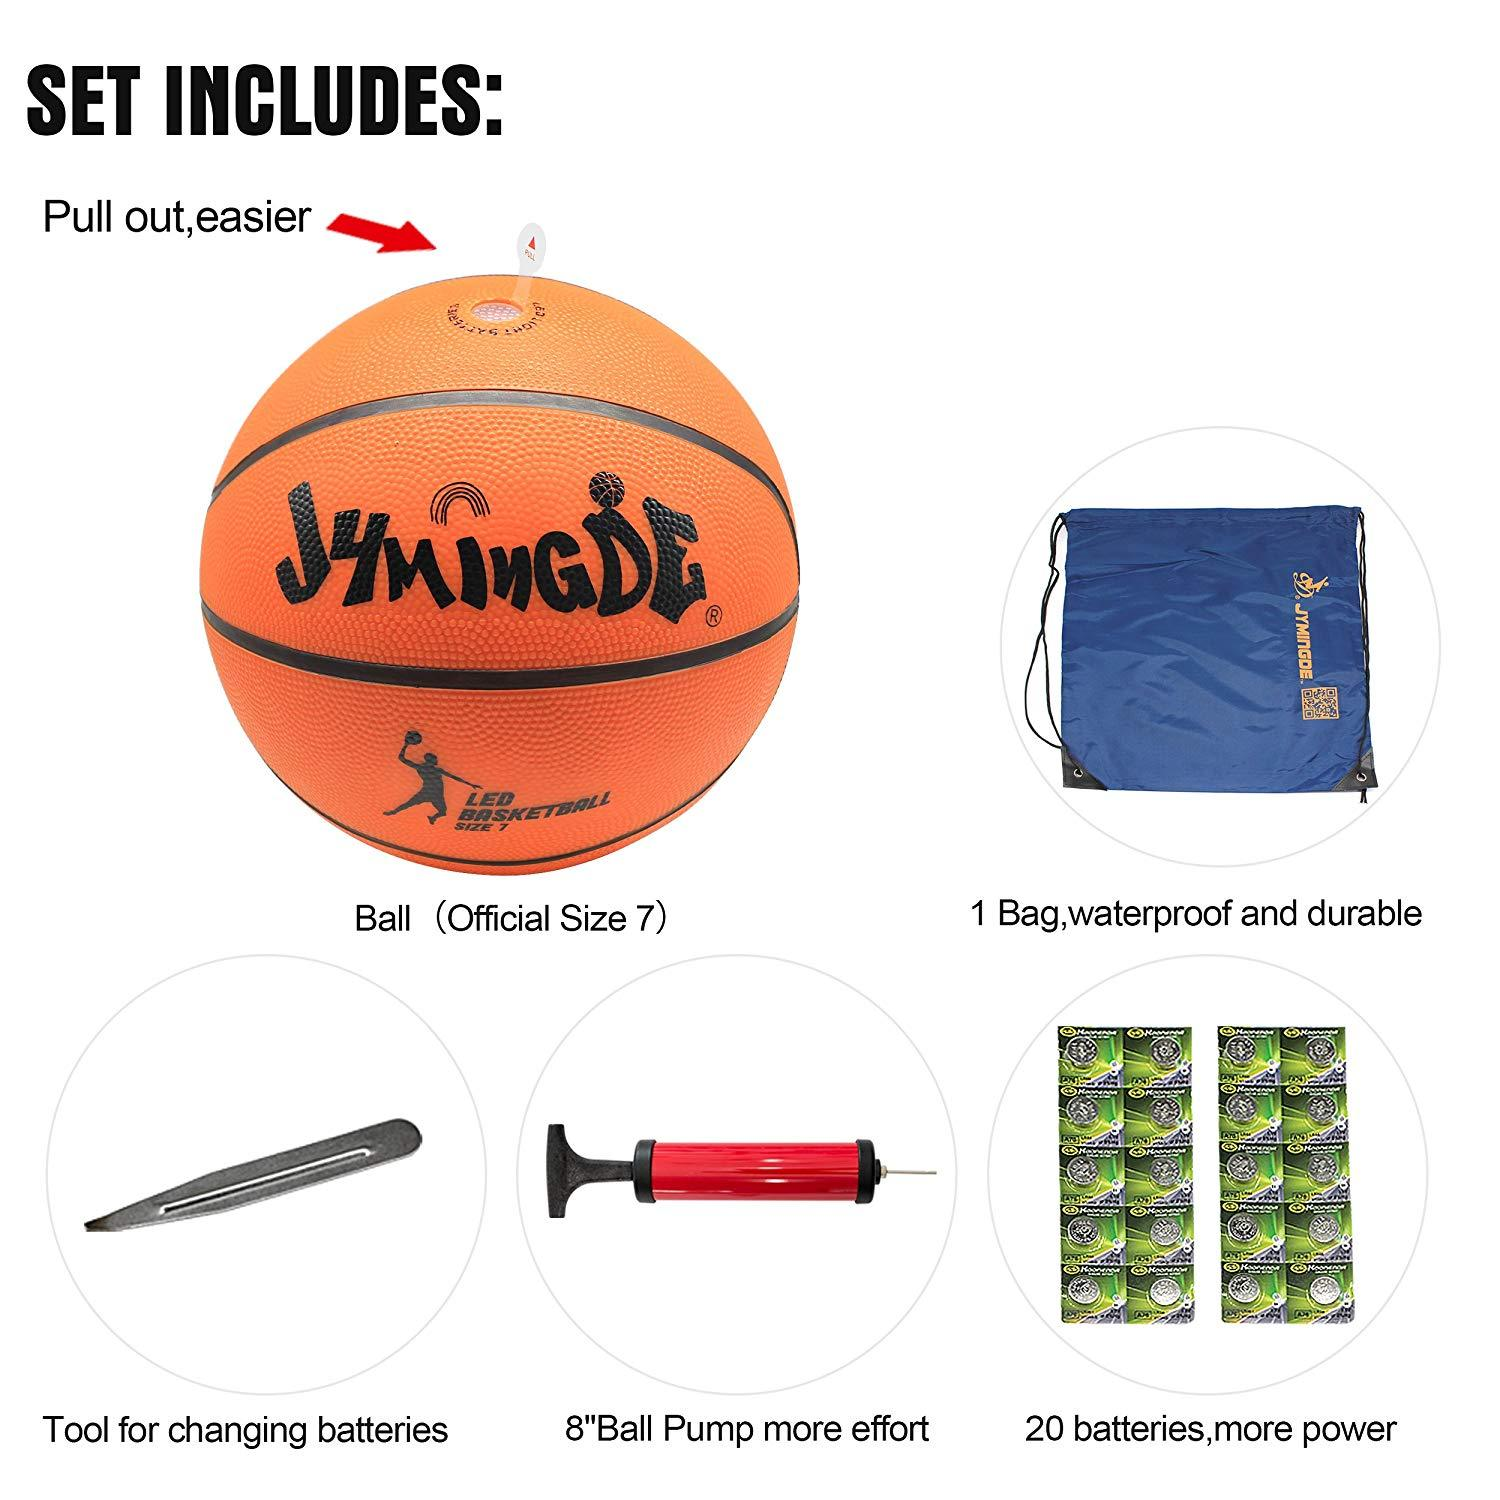 Complete set of LED basketball from Woosir